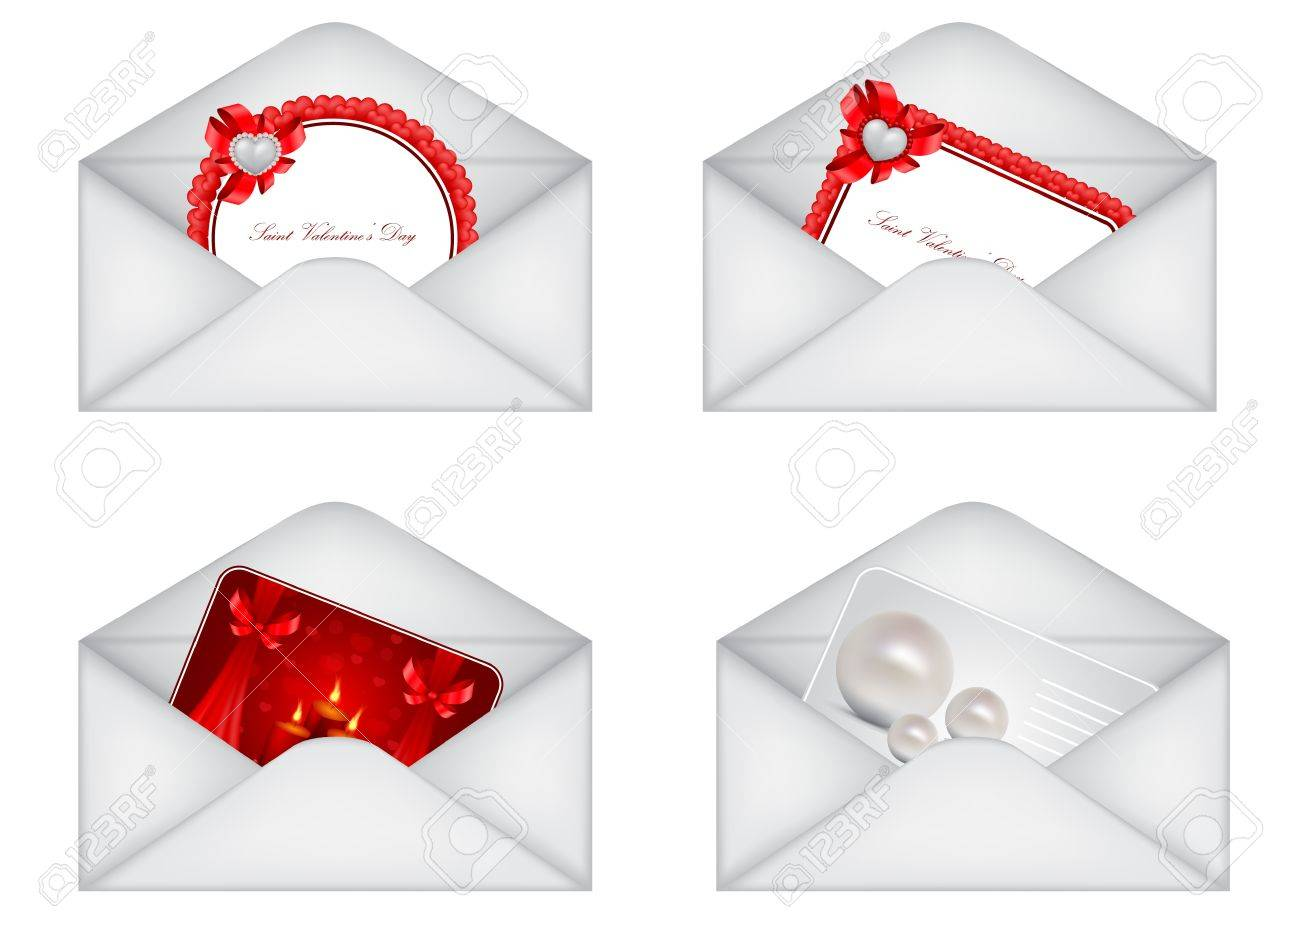 vector Saint Valentine's Day greeting card Stock Vector - 11888757